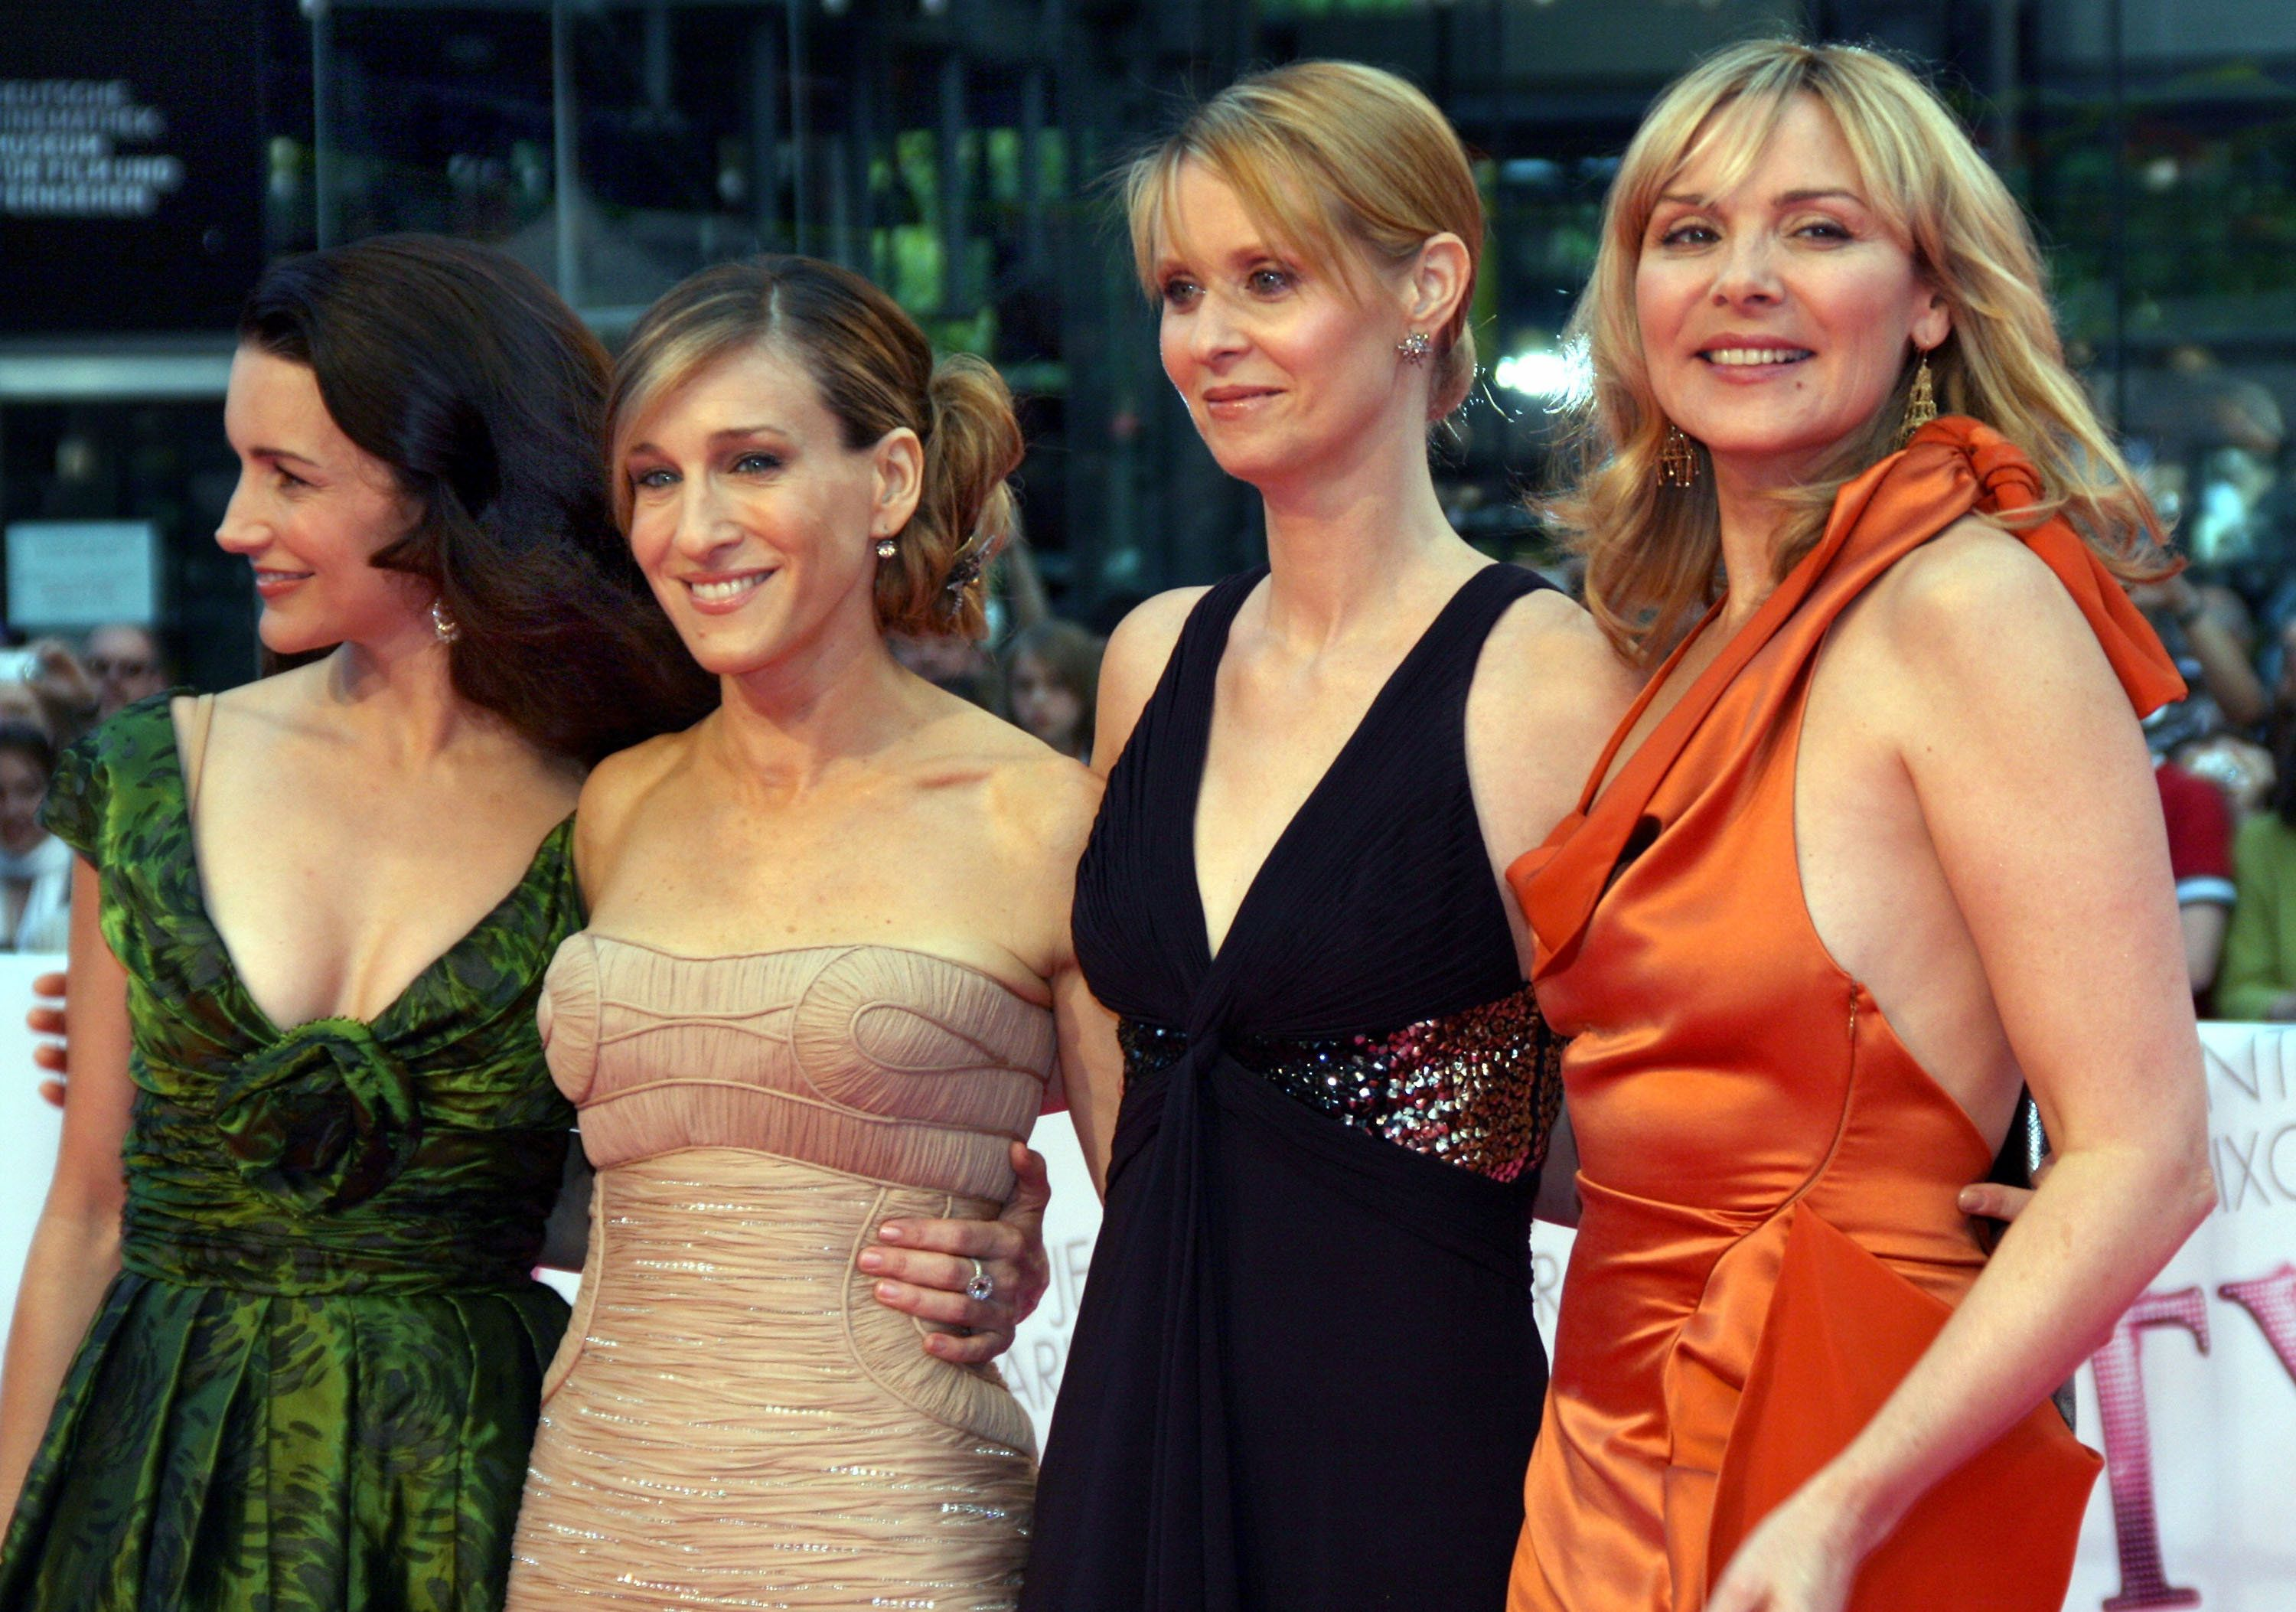 BERLIN - MAY 15:  Actresses Kristin Davis, Sarah Jessica Parker, Cynthia Nixon and Kim Catrall attendthe German premiere of 'Sex And The City' at the Cinestar movie theatre on May 15, 2008 in Berlin, Germany.  (Photo by Anita Bugge/WireImage)